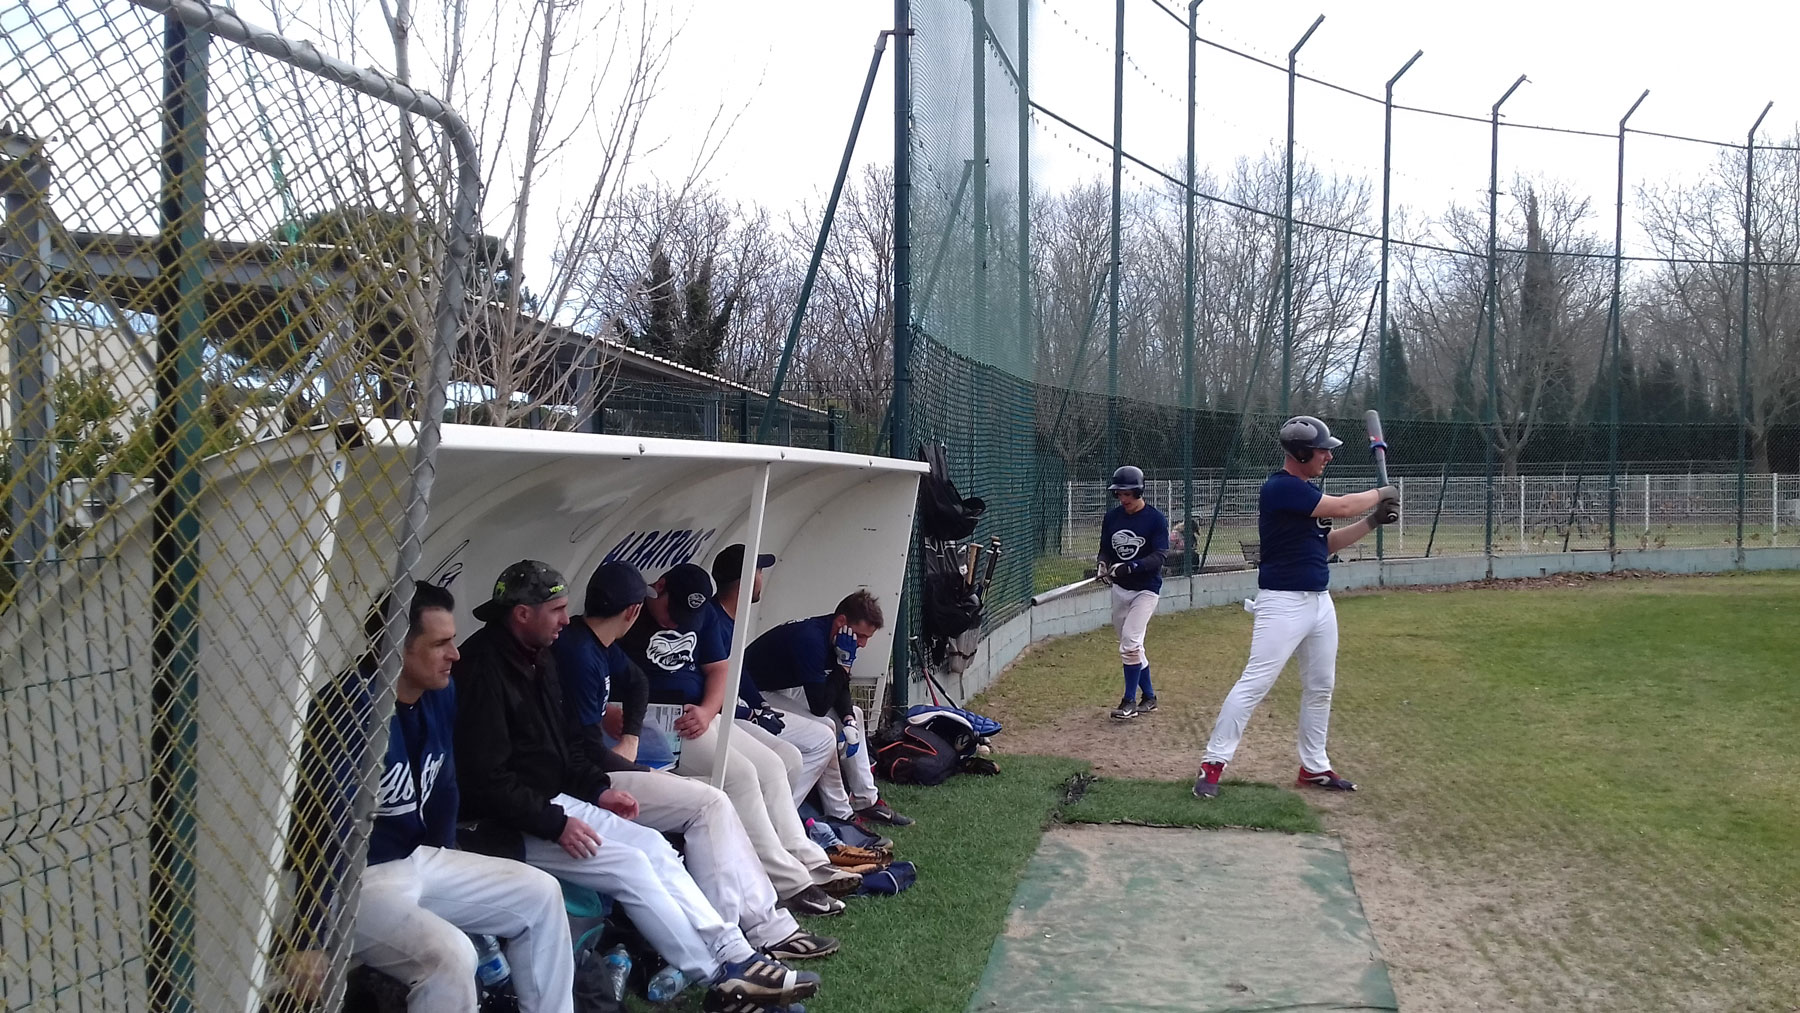 albatros-baseball-bench-mtp-vs-lgm